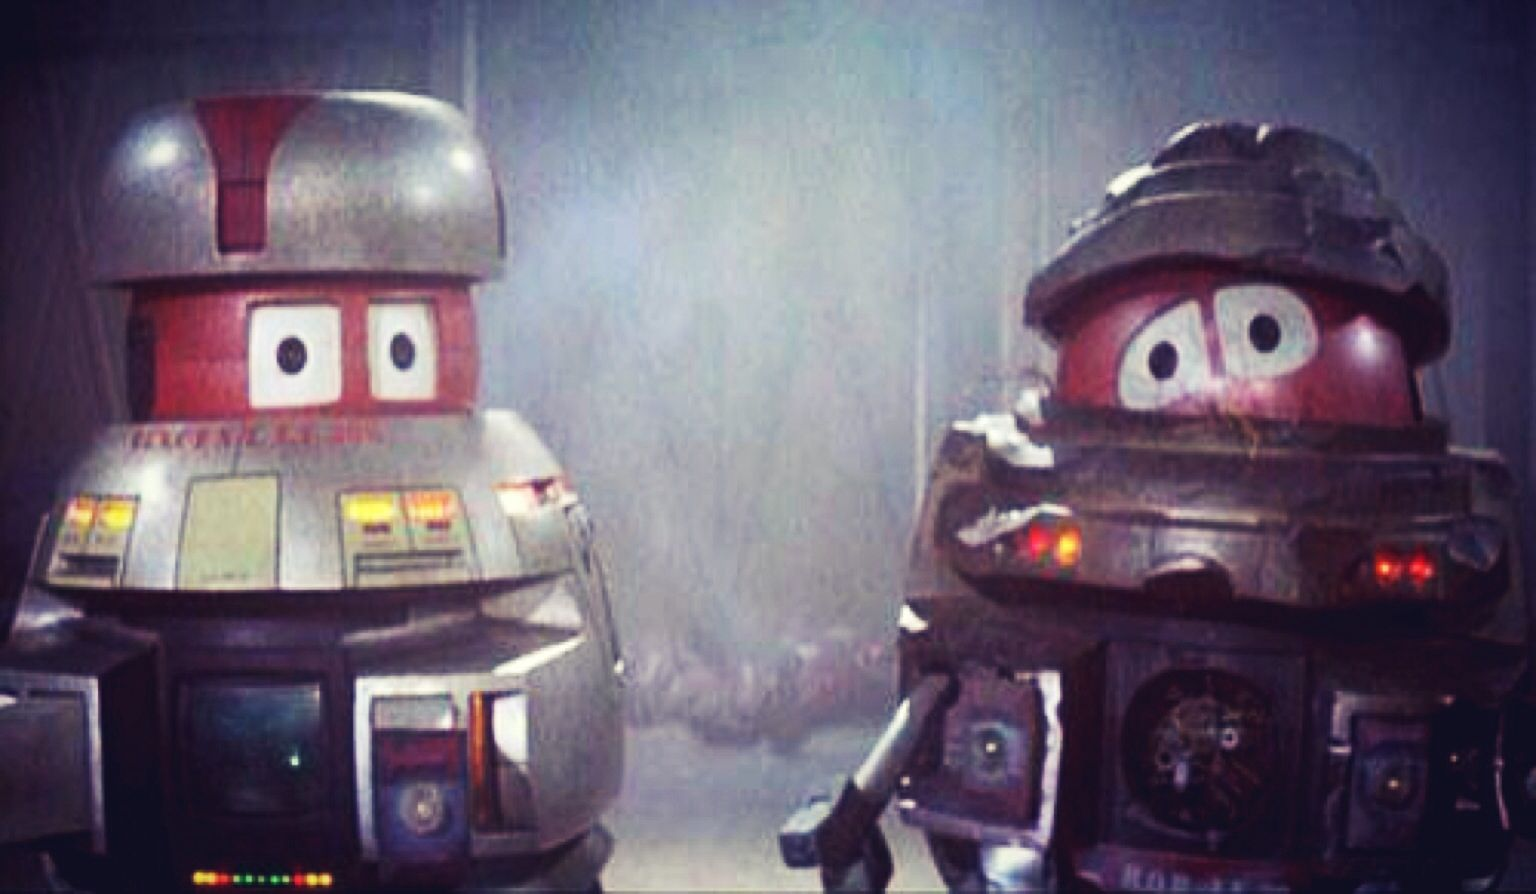 938bfdd329961476600fc7e72d25fcf2 The Best (And Worst) Movie Robots